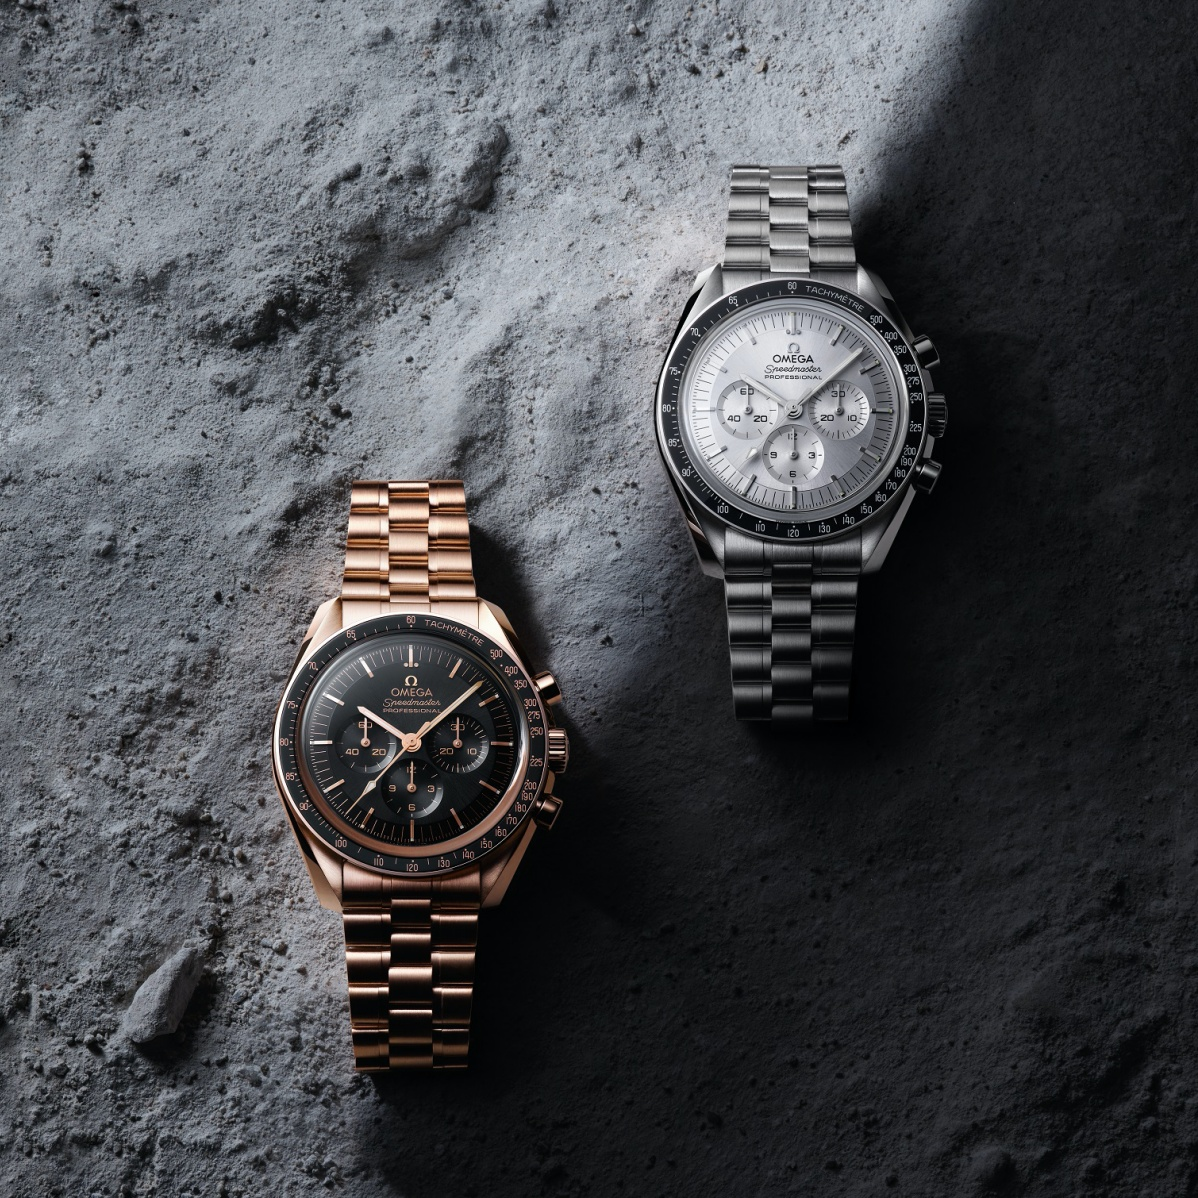 The Omega Speedmasters in gold